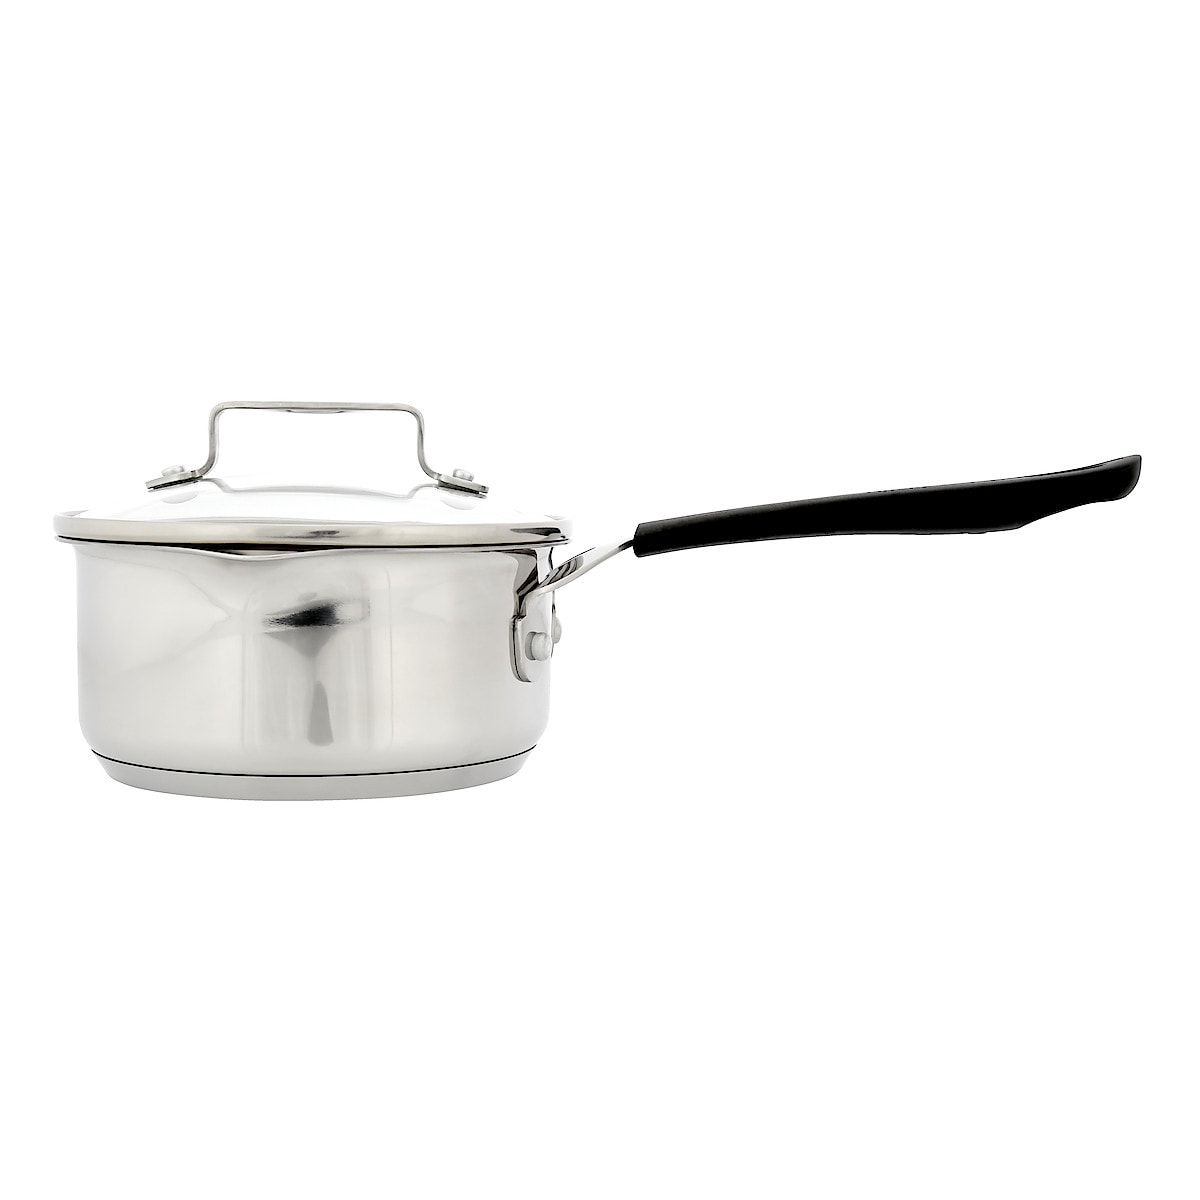 Kattila 1,4 l Jamie Oliver Everyday Stainless Steel